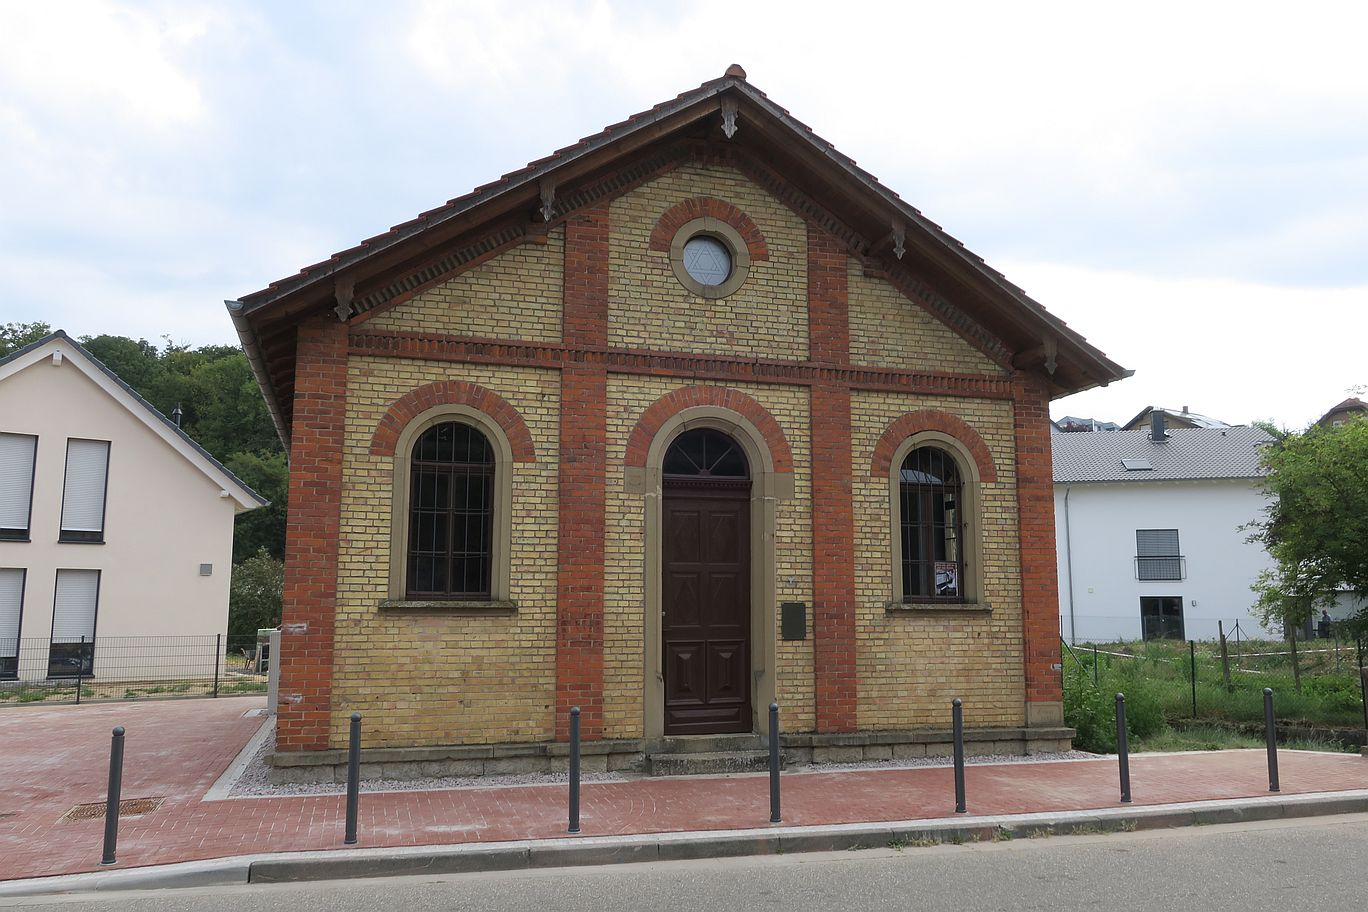 The Synagogue in August 2018